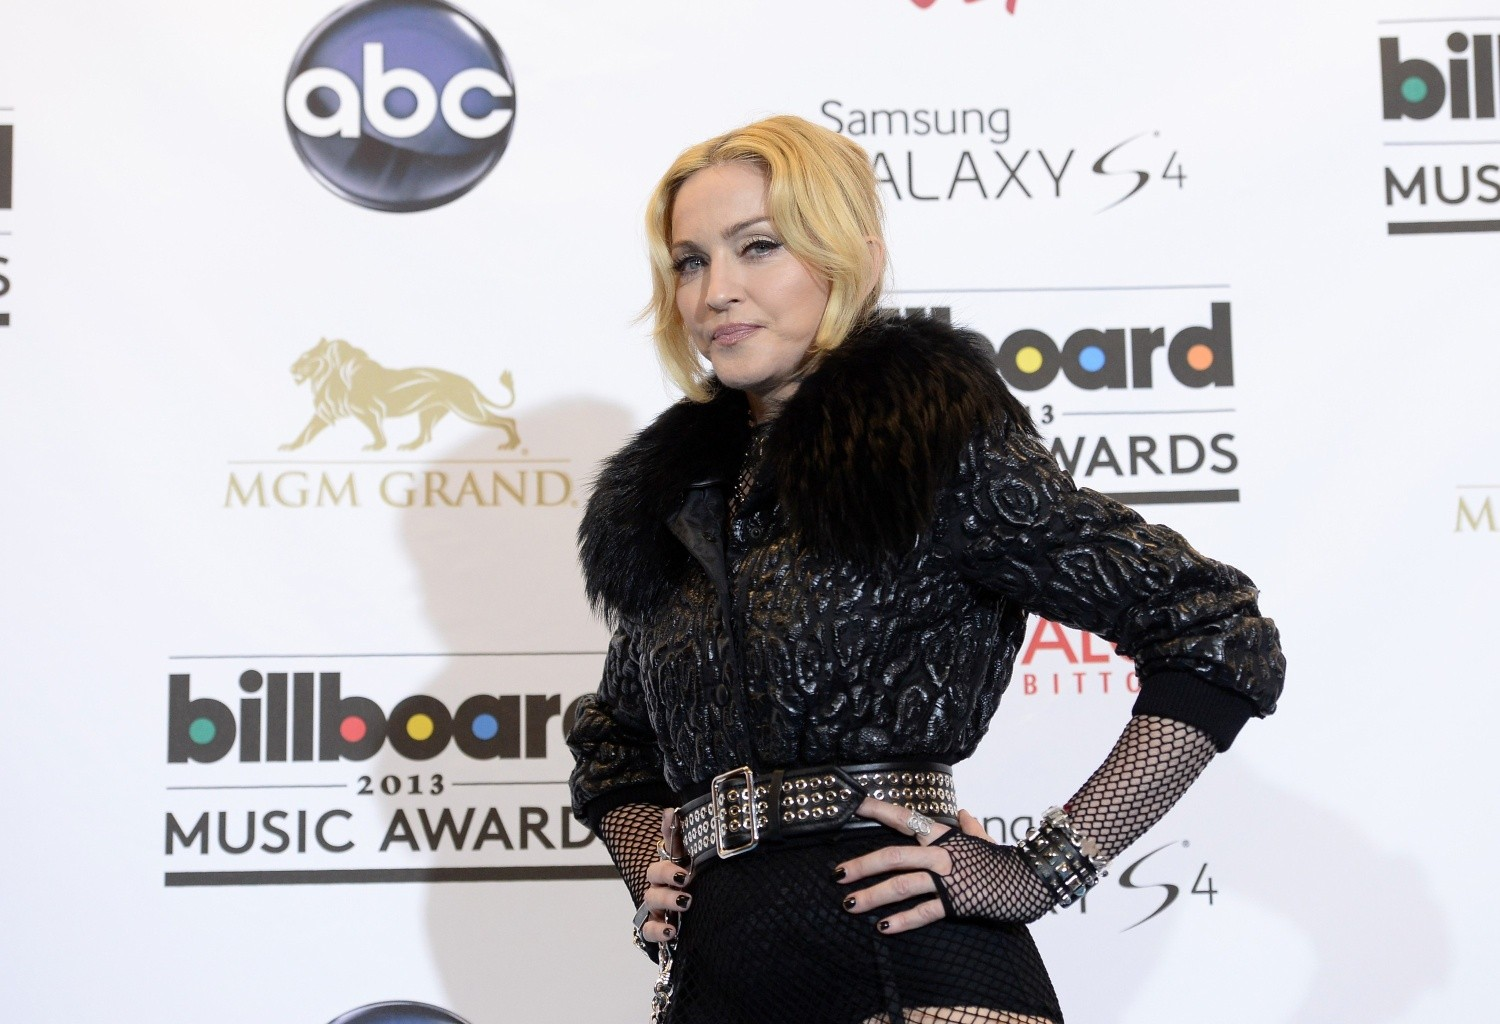 Madonna Billboard Music Awards 2013